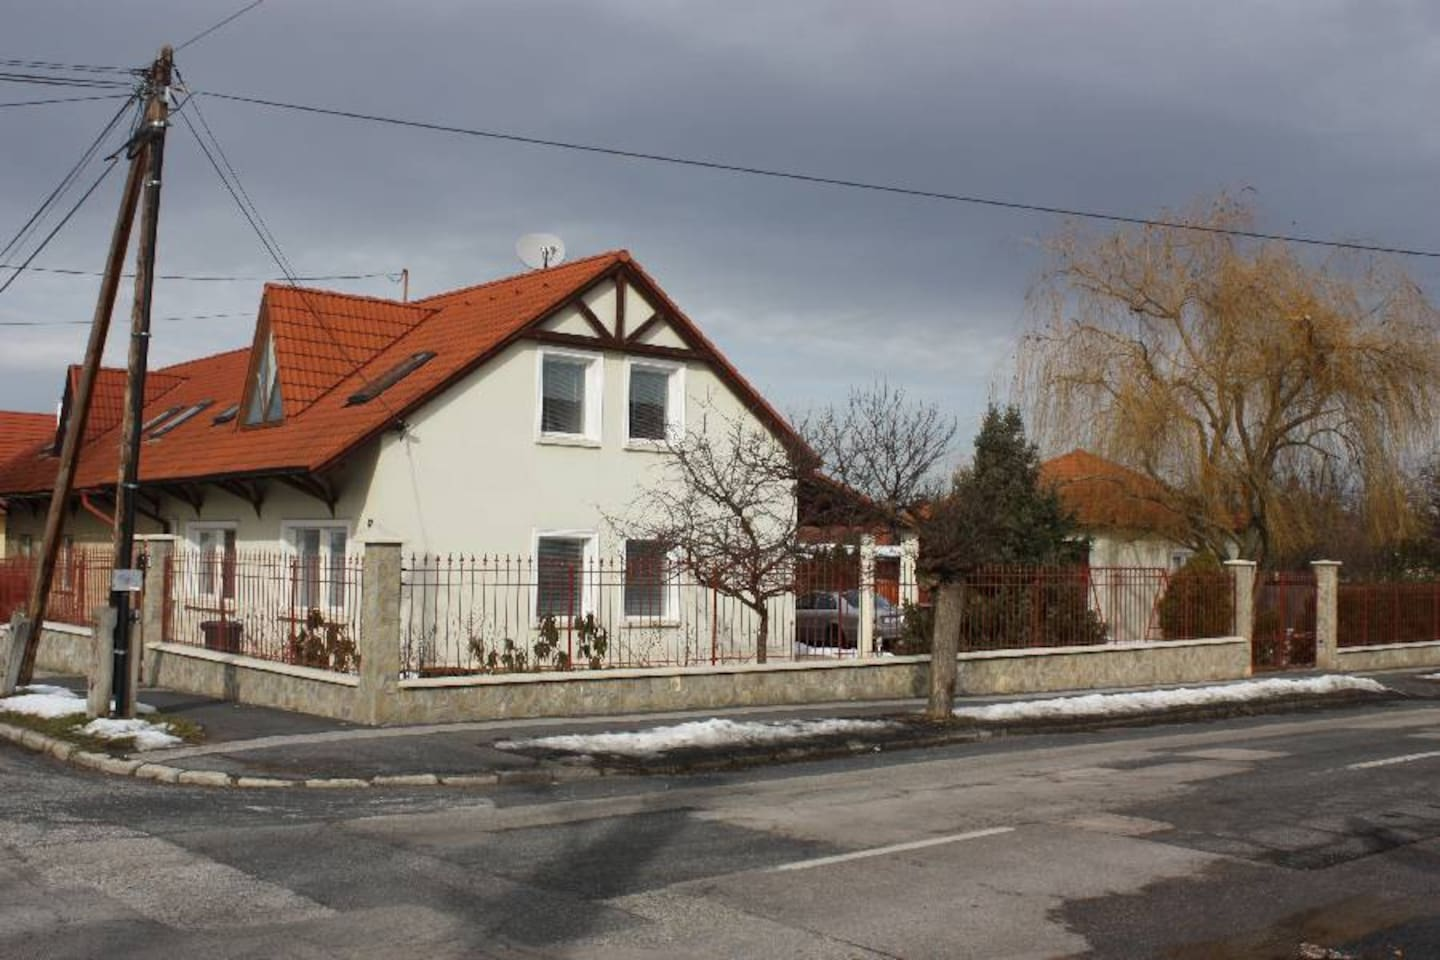 The hause in spring